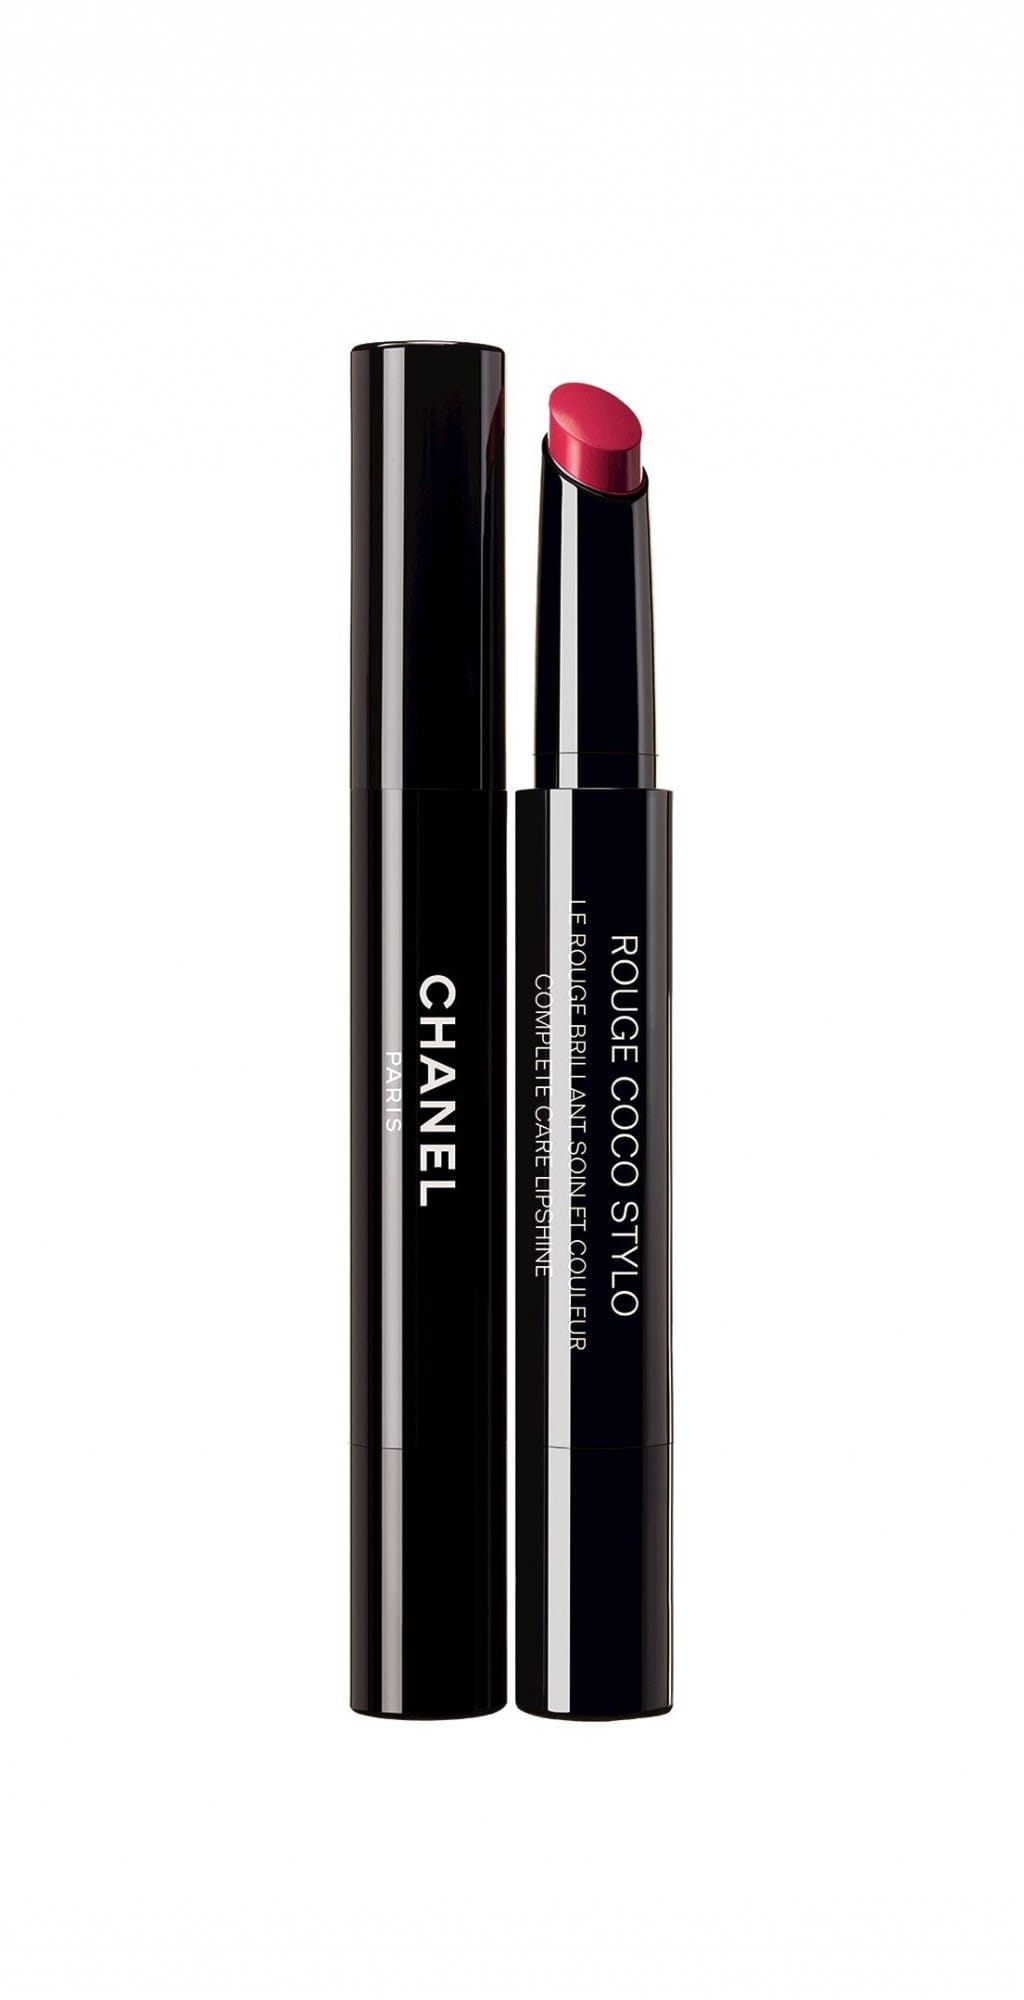 Your Next Beauty Purchase Is Here – Meet the Chanel 'Rouge Coco Stylo'